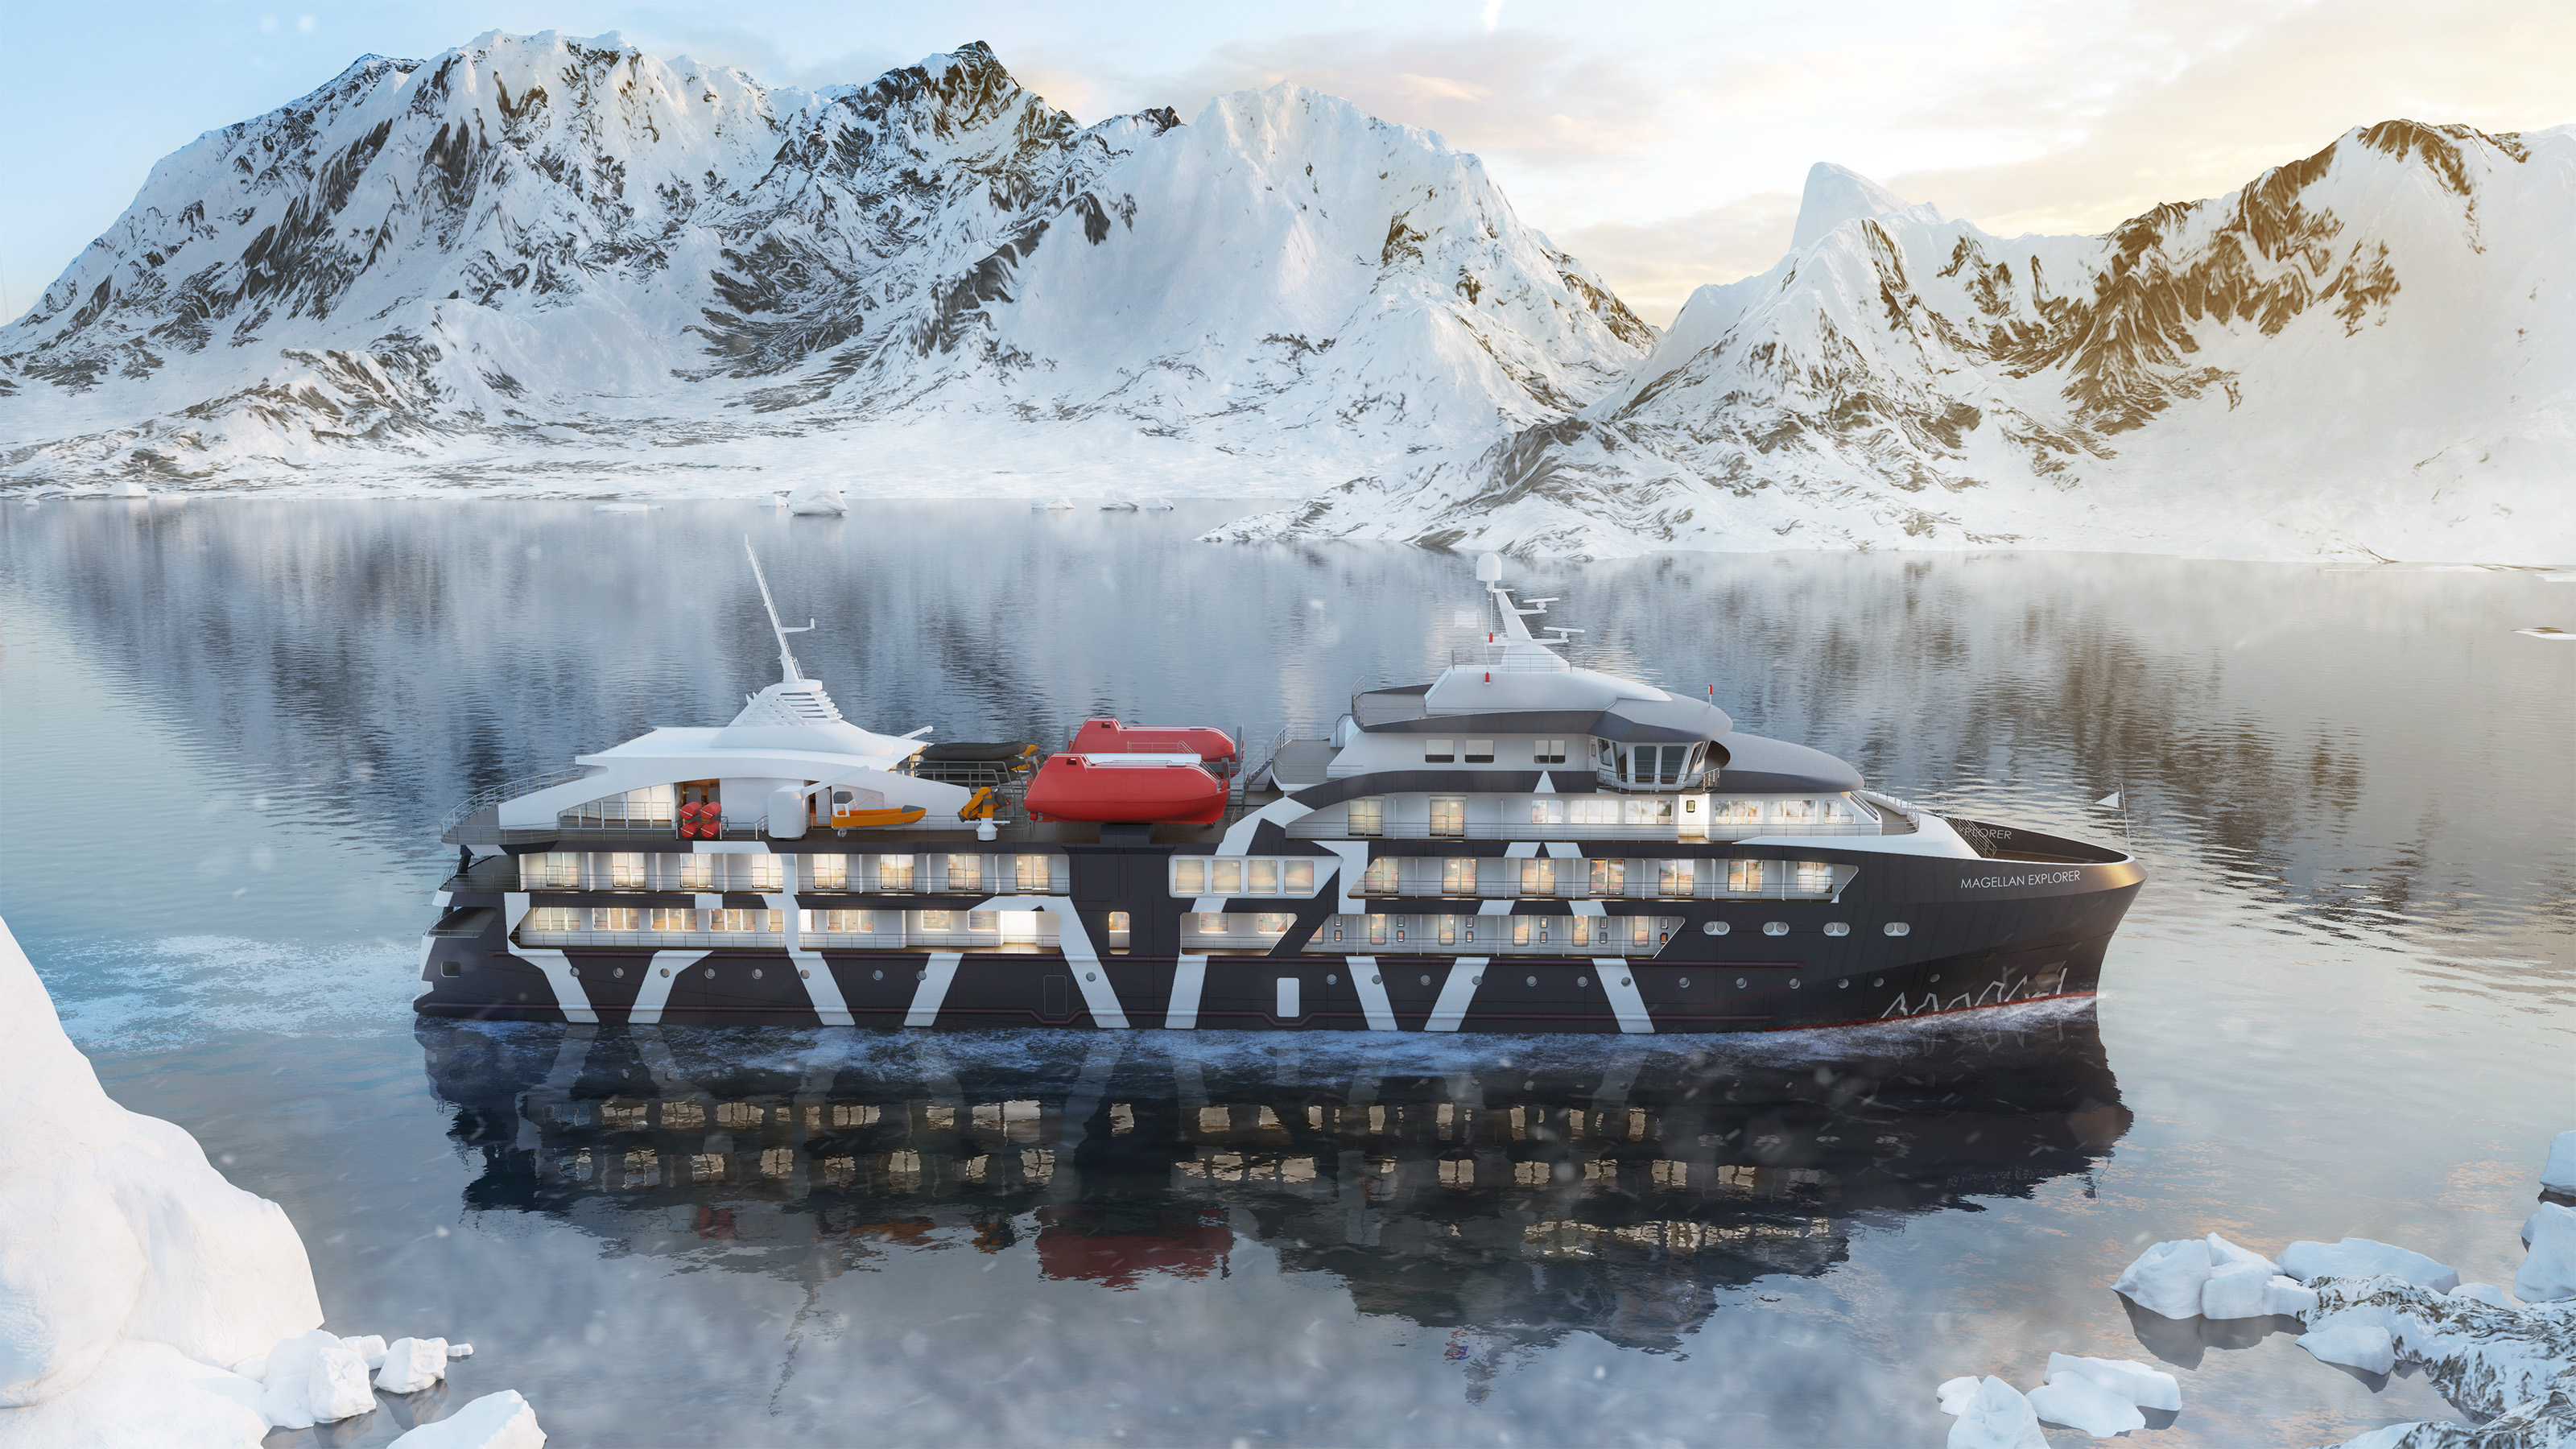 Rendering of Magellan Explorer. The 73-passenger vessel is scheduled to make its maiden voyage to the Antarctic on November 28. Graphic courtesy of Antarctica21.